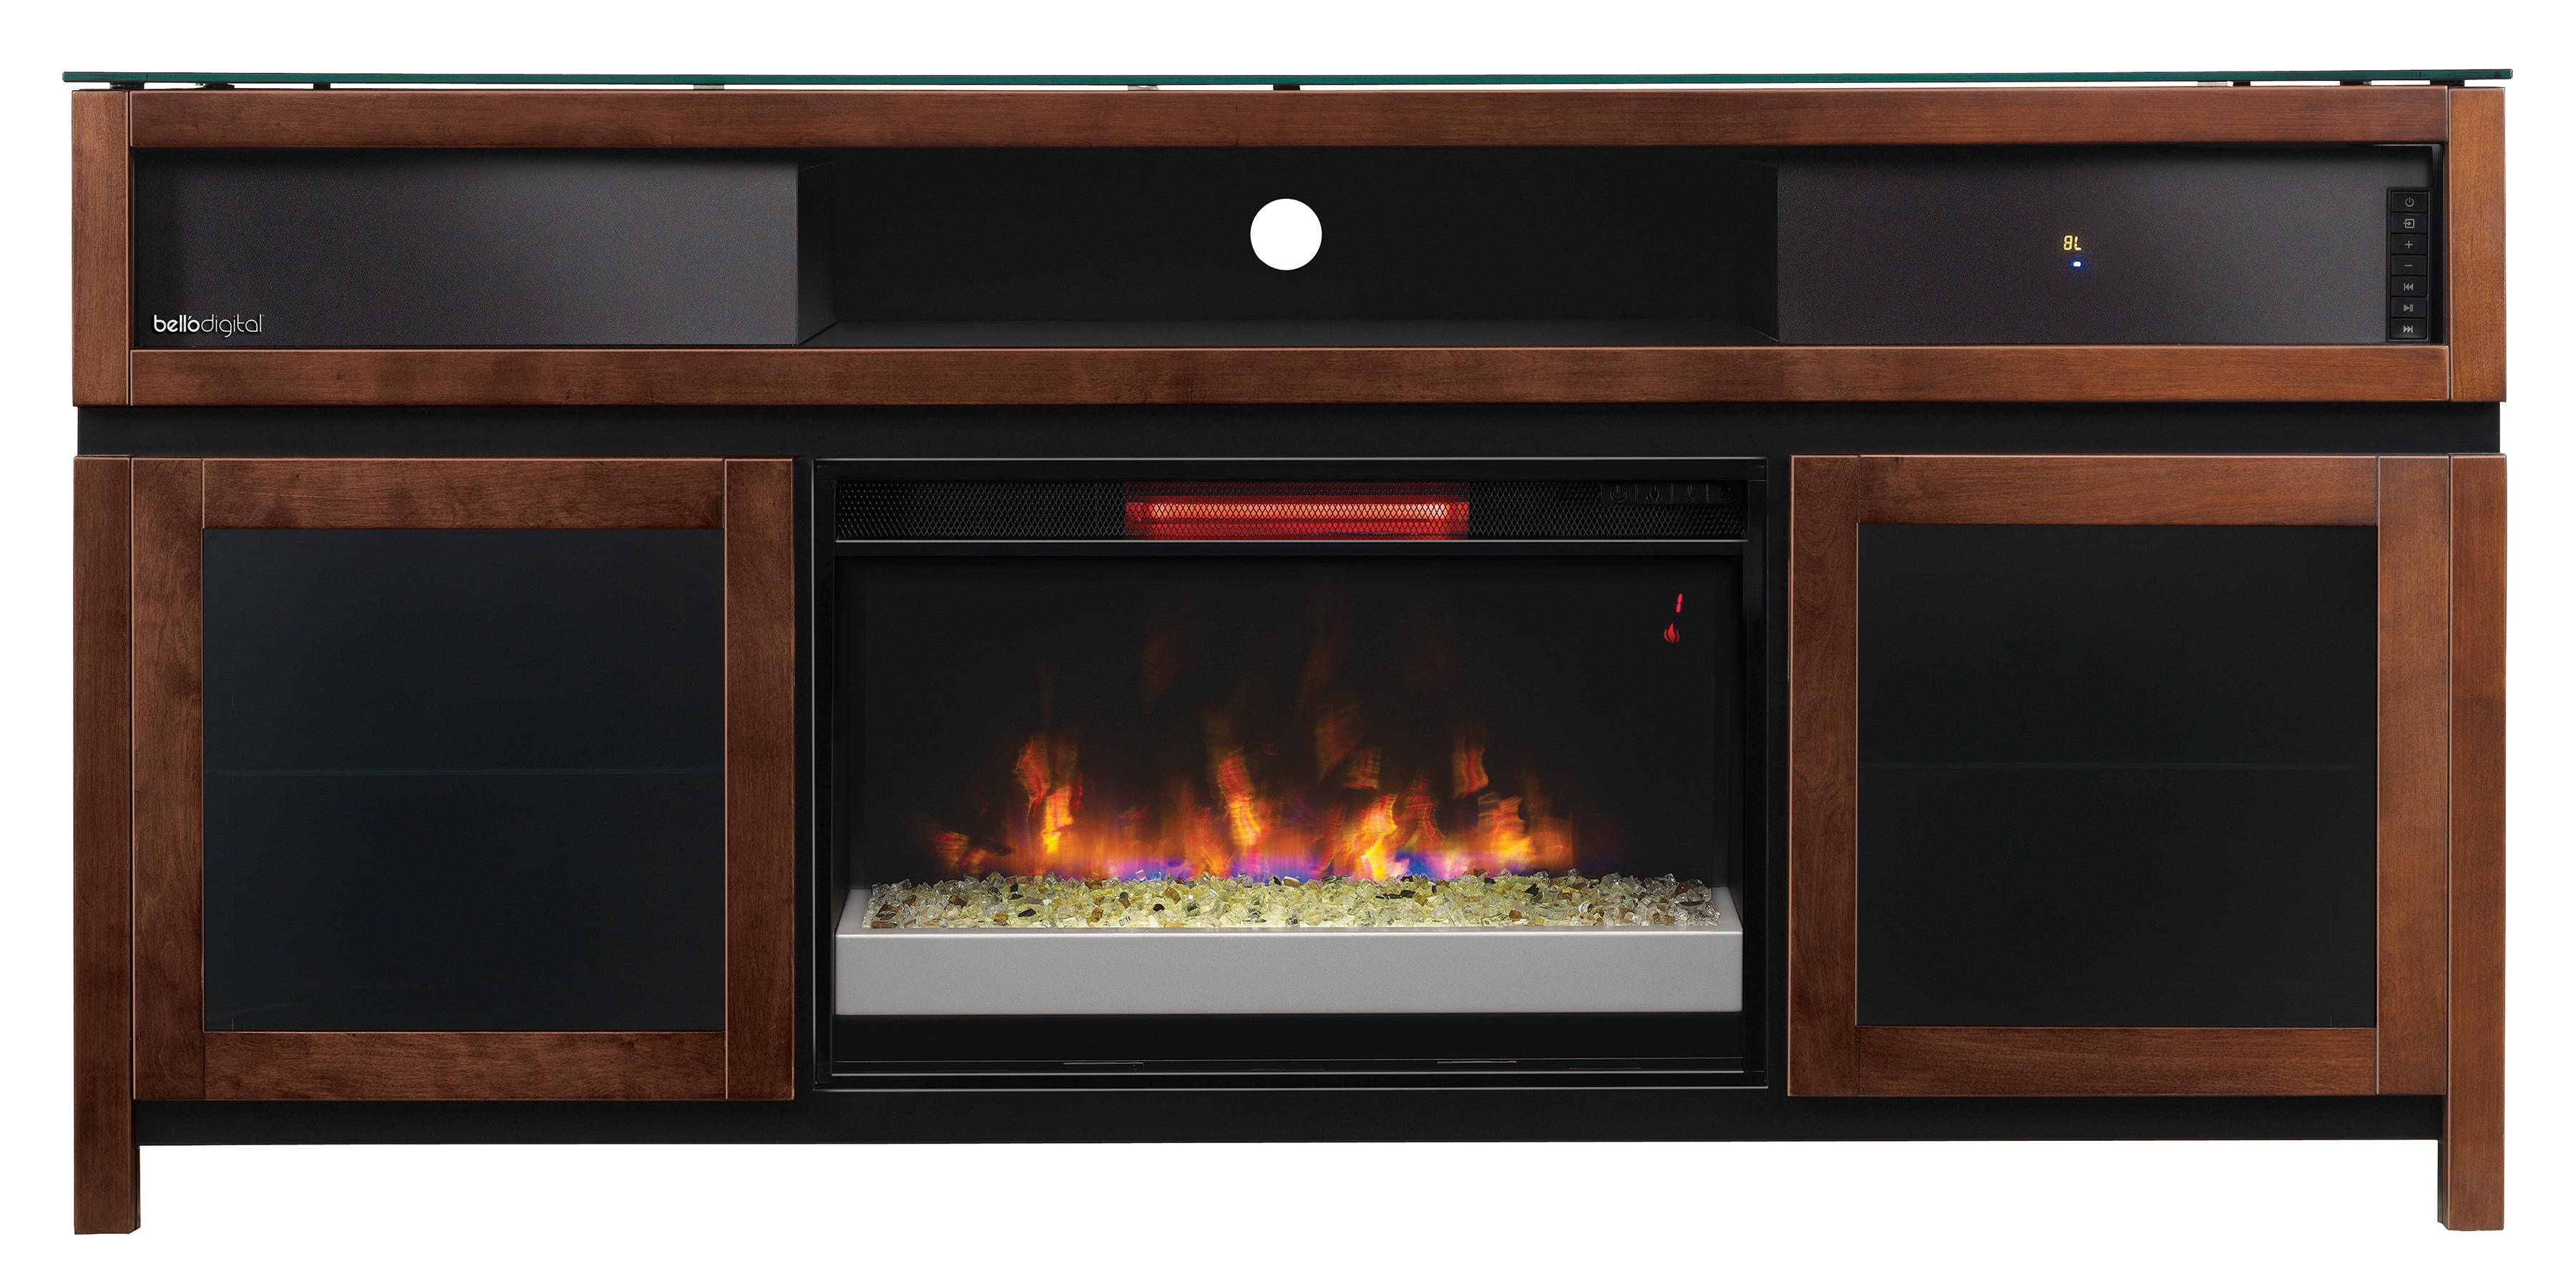 Morris Home Furnishings Gasquet Gasquet Console with Fireplace Insert - Item Number: 571918677